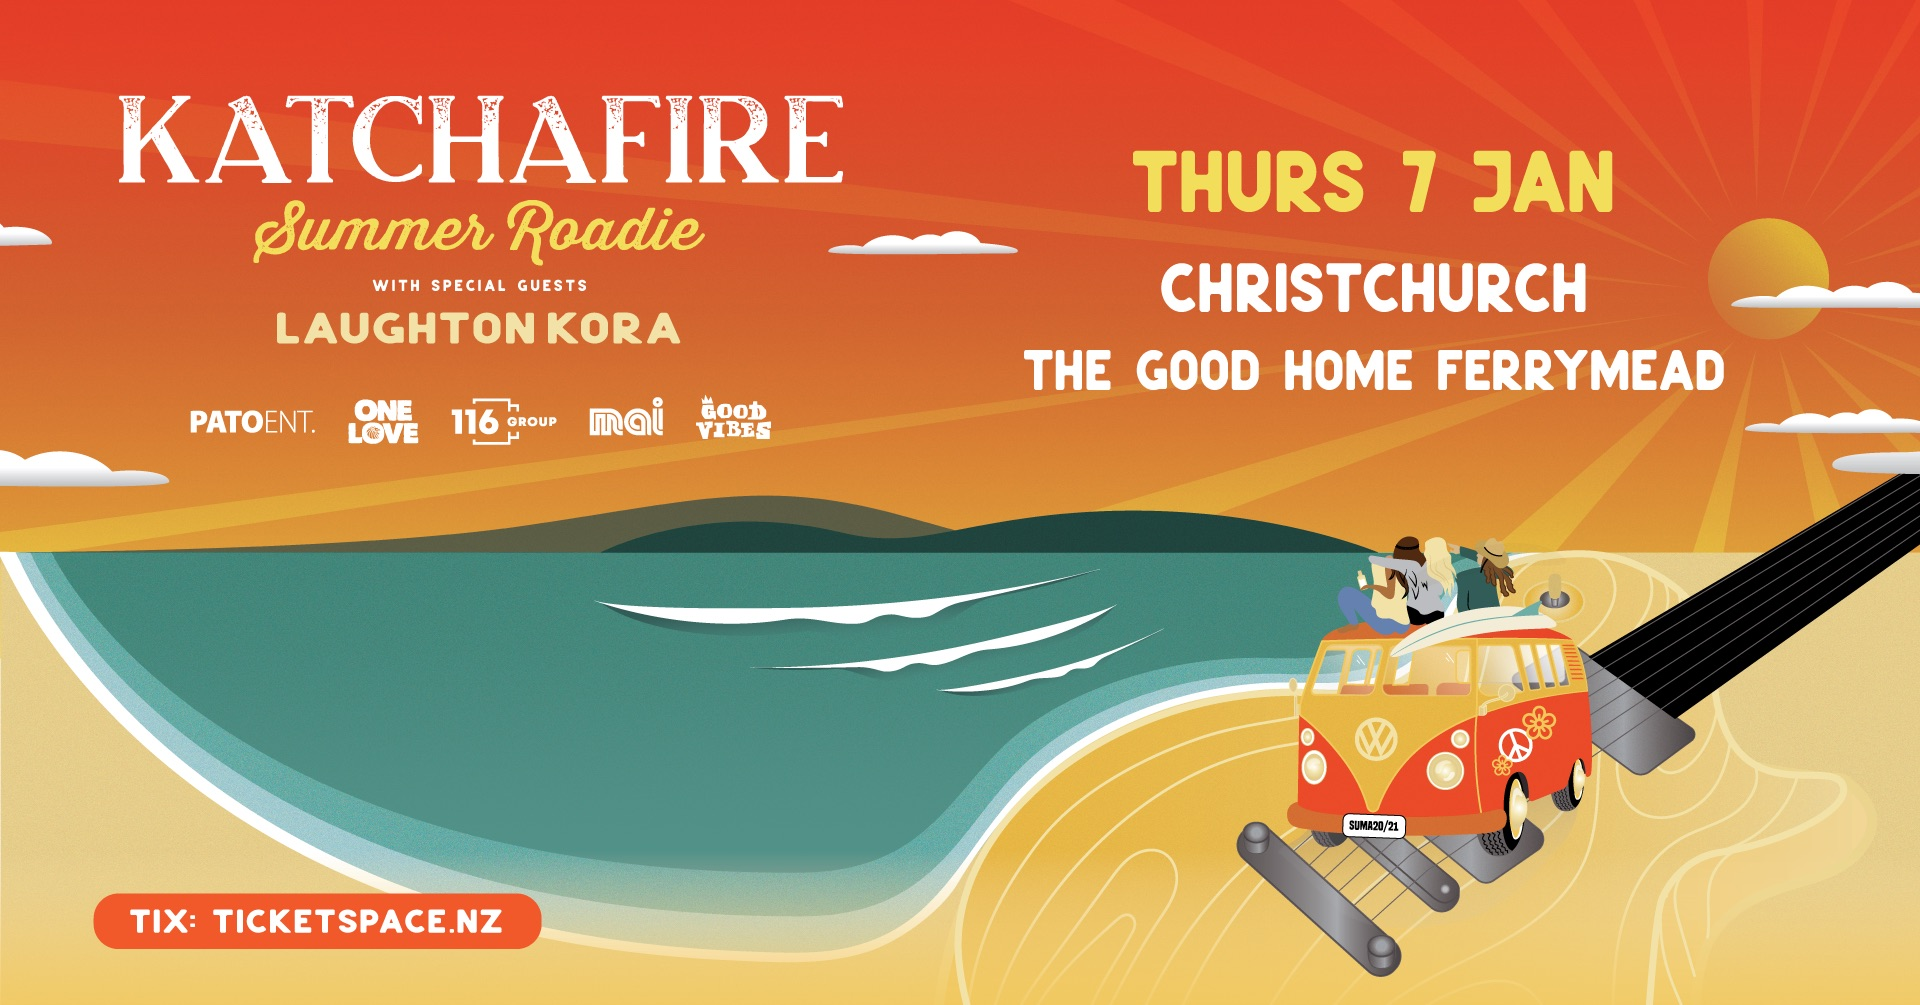 Tickets for Katchafire Summer Roadie - Christchurch in Christchurch from Ticketspace